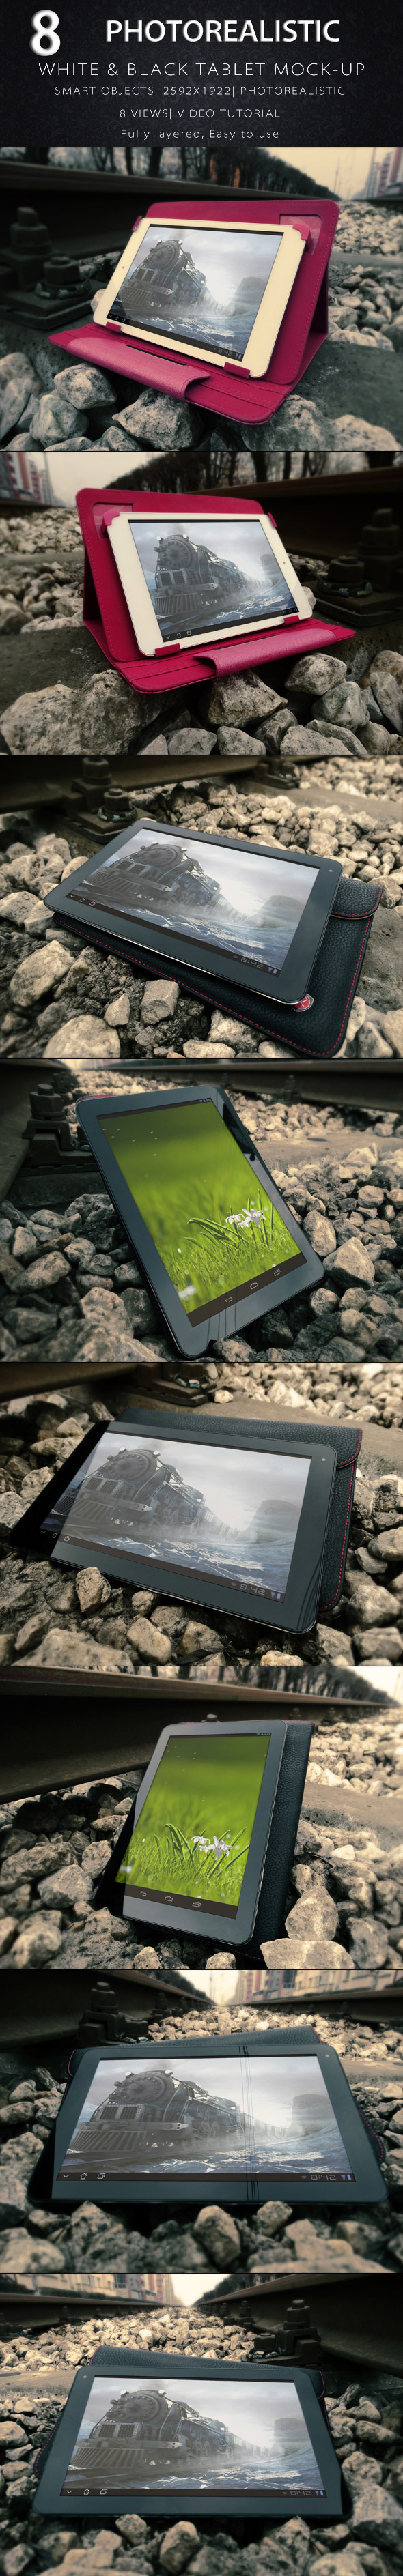 Photorealistic Tablet